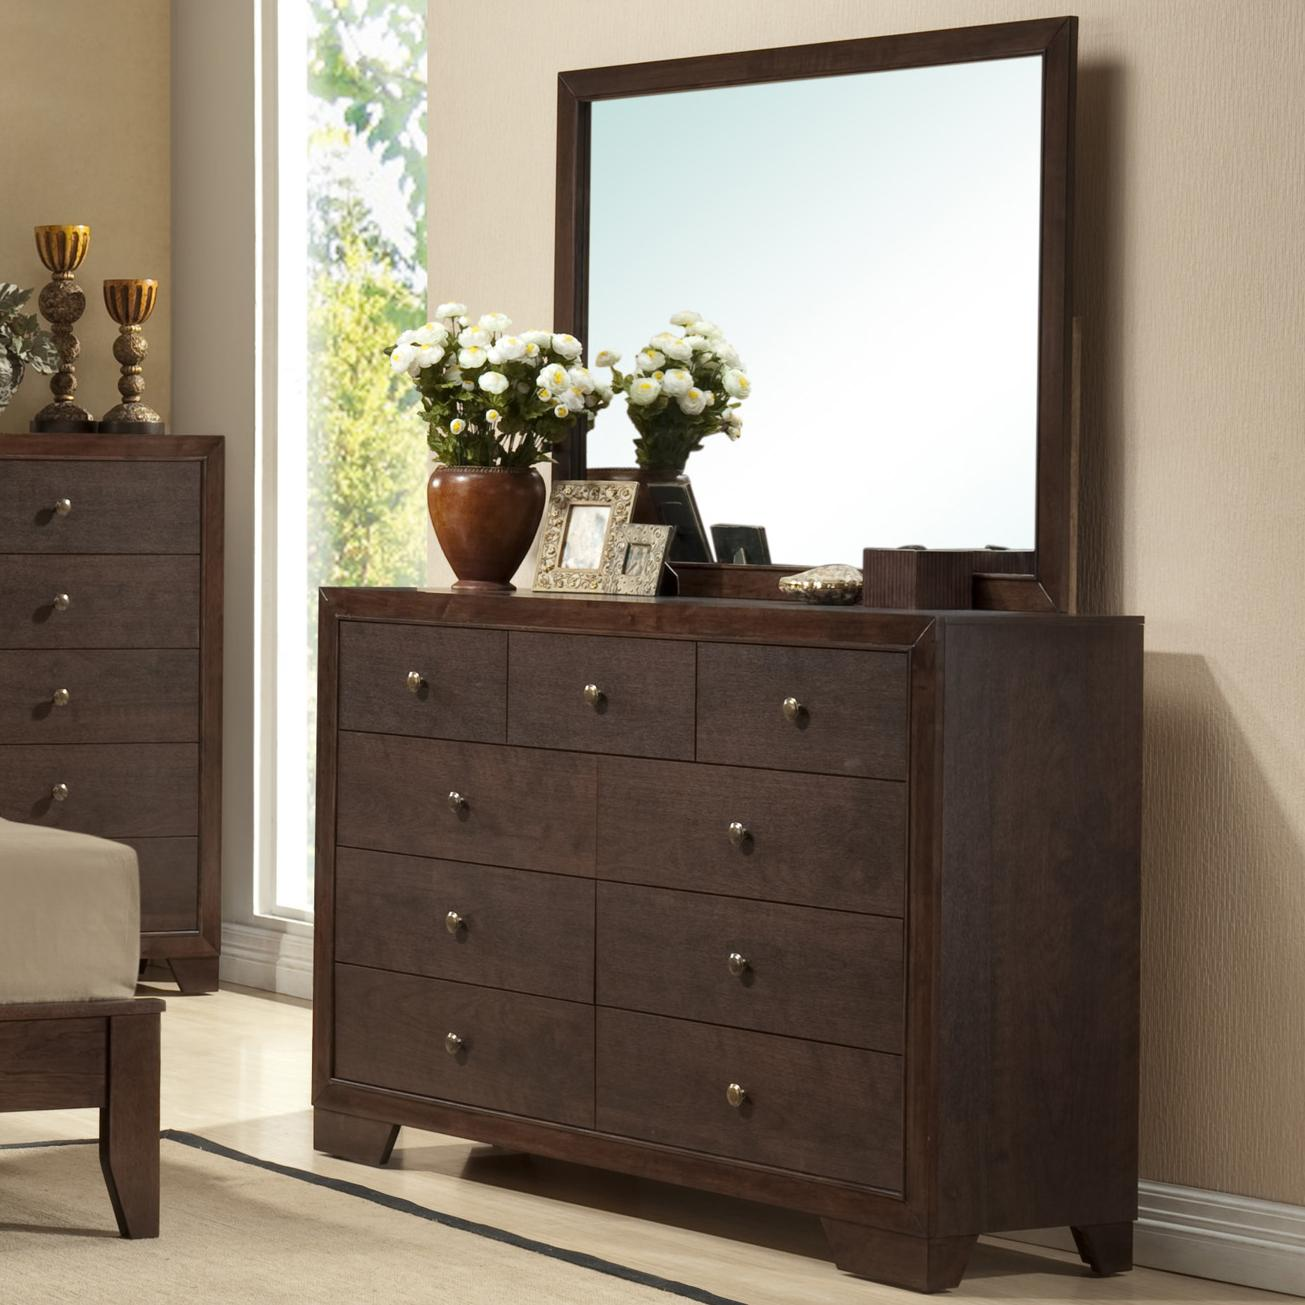 Crown mark silvia dresser mirror del sol furniture for Furniture markup